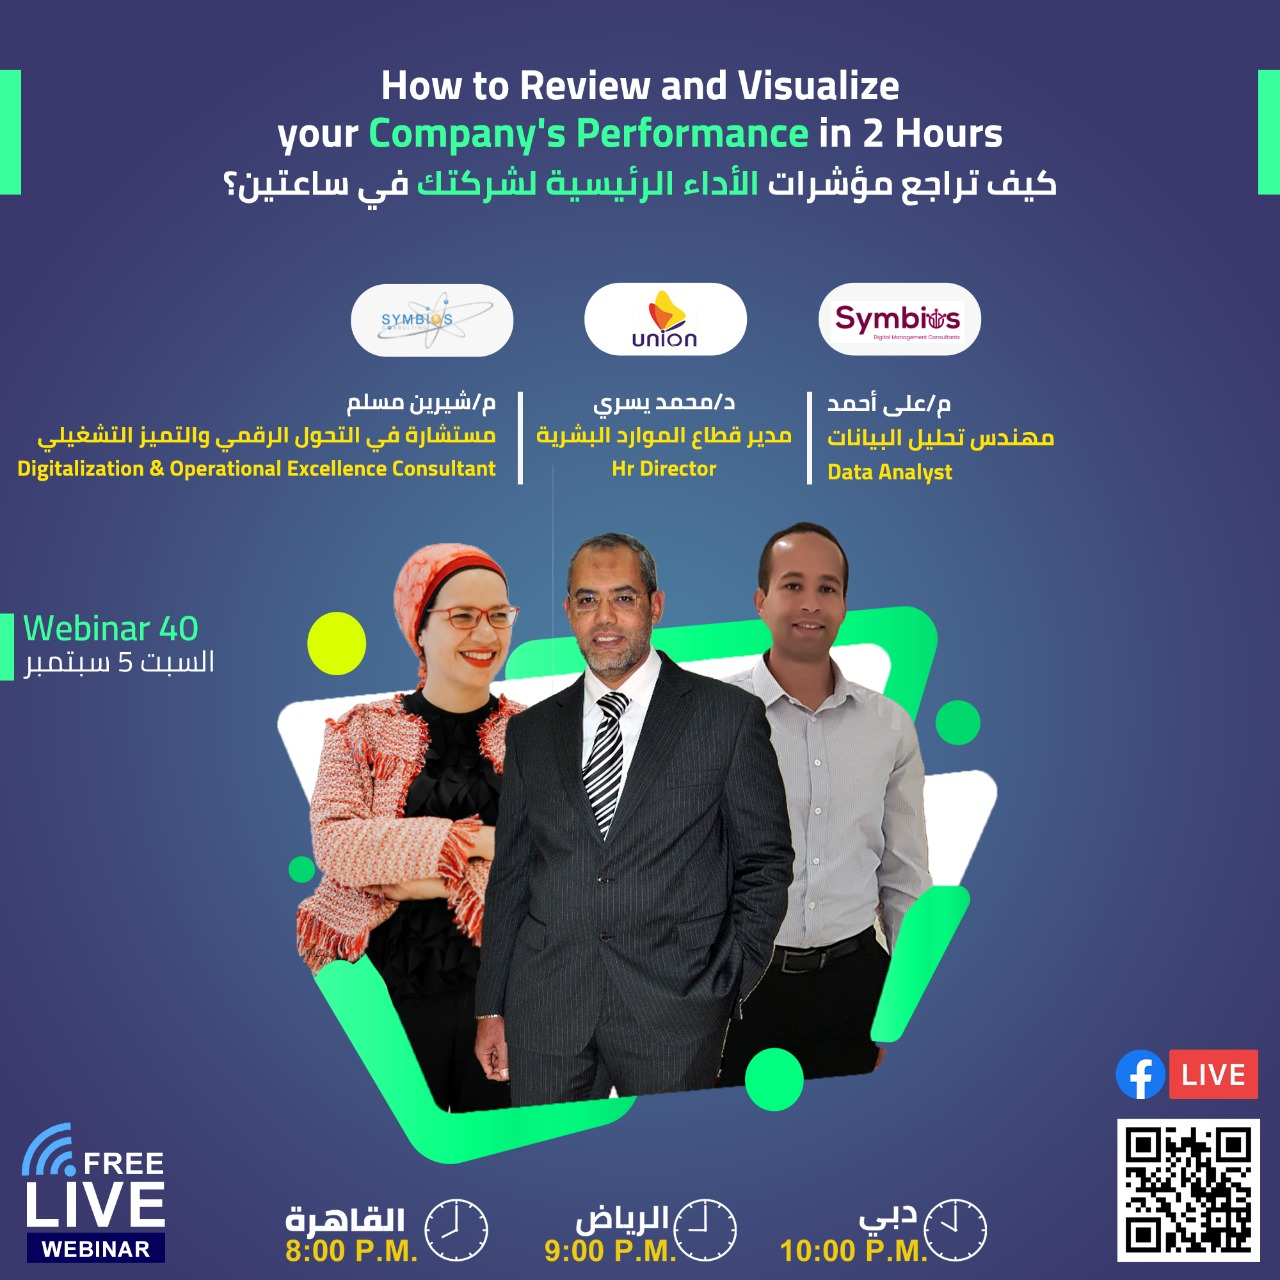 How to Review & Visualize your Company's Performance in 2 Hours